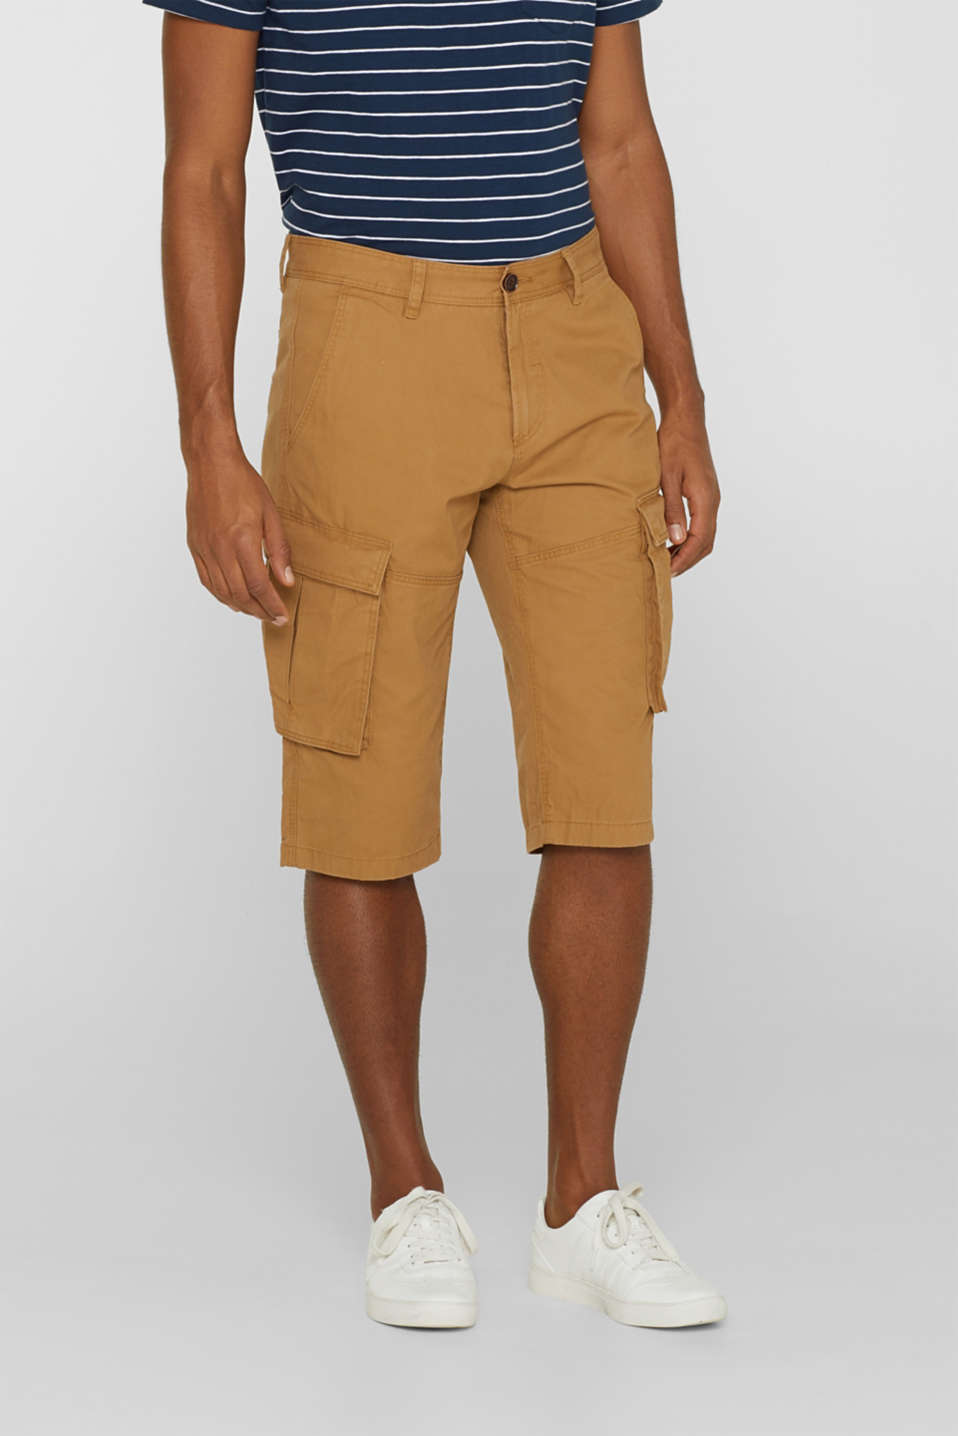 Esprit - Cargo shorts in 100% cotton